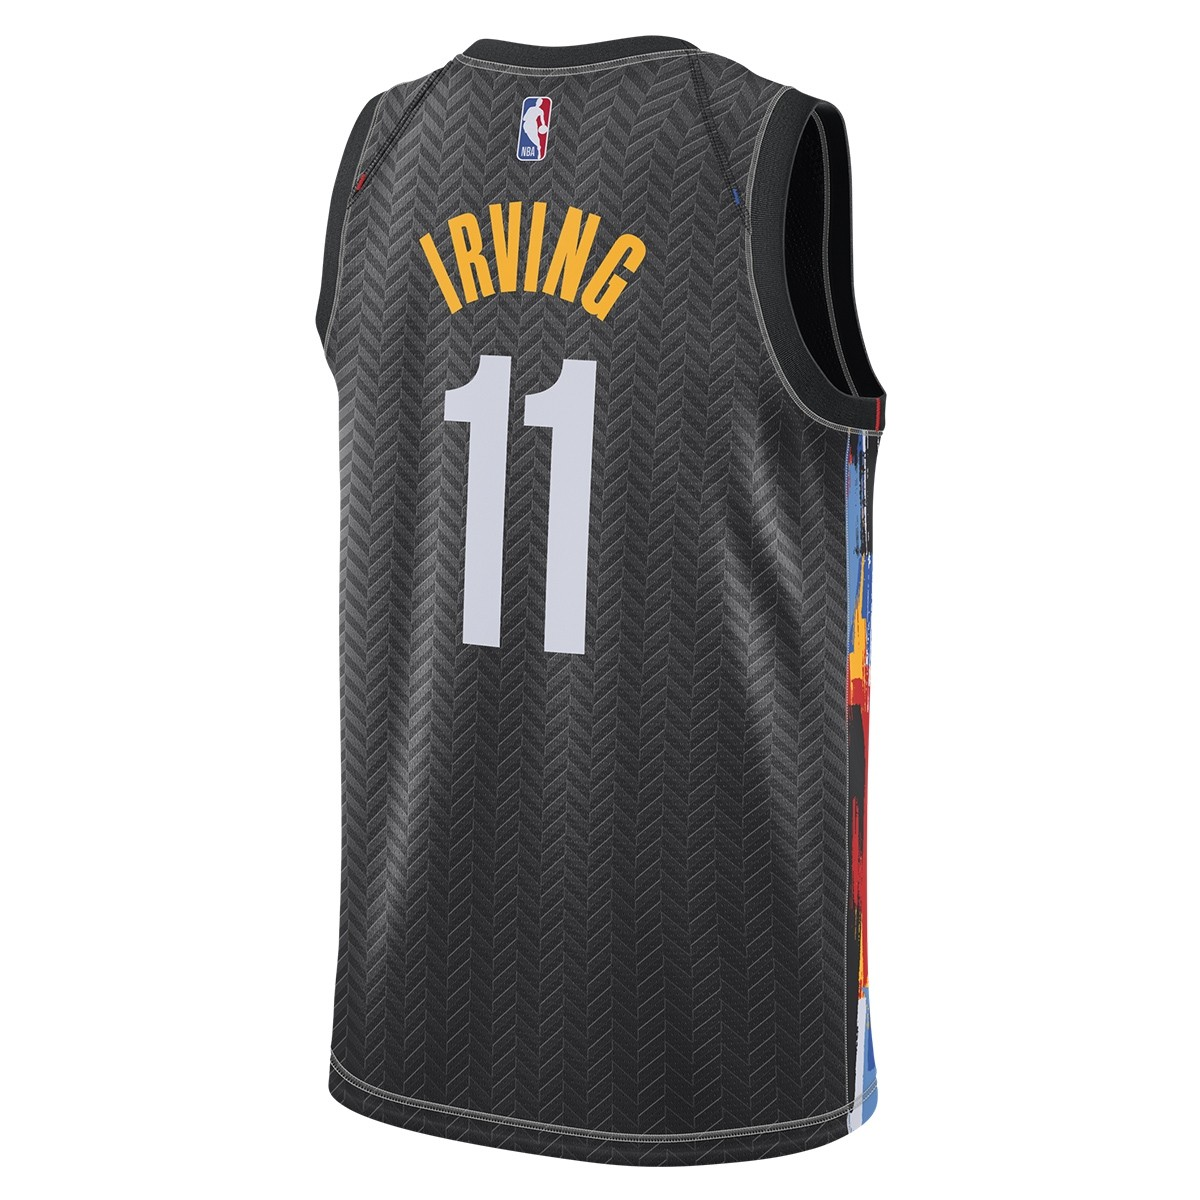 Nike NBA Brooklyn Nets Swingman Jersey Kyrie Irving 'City Edition'-CN1713-018